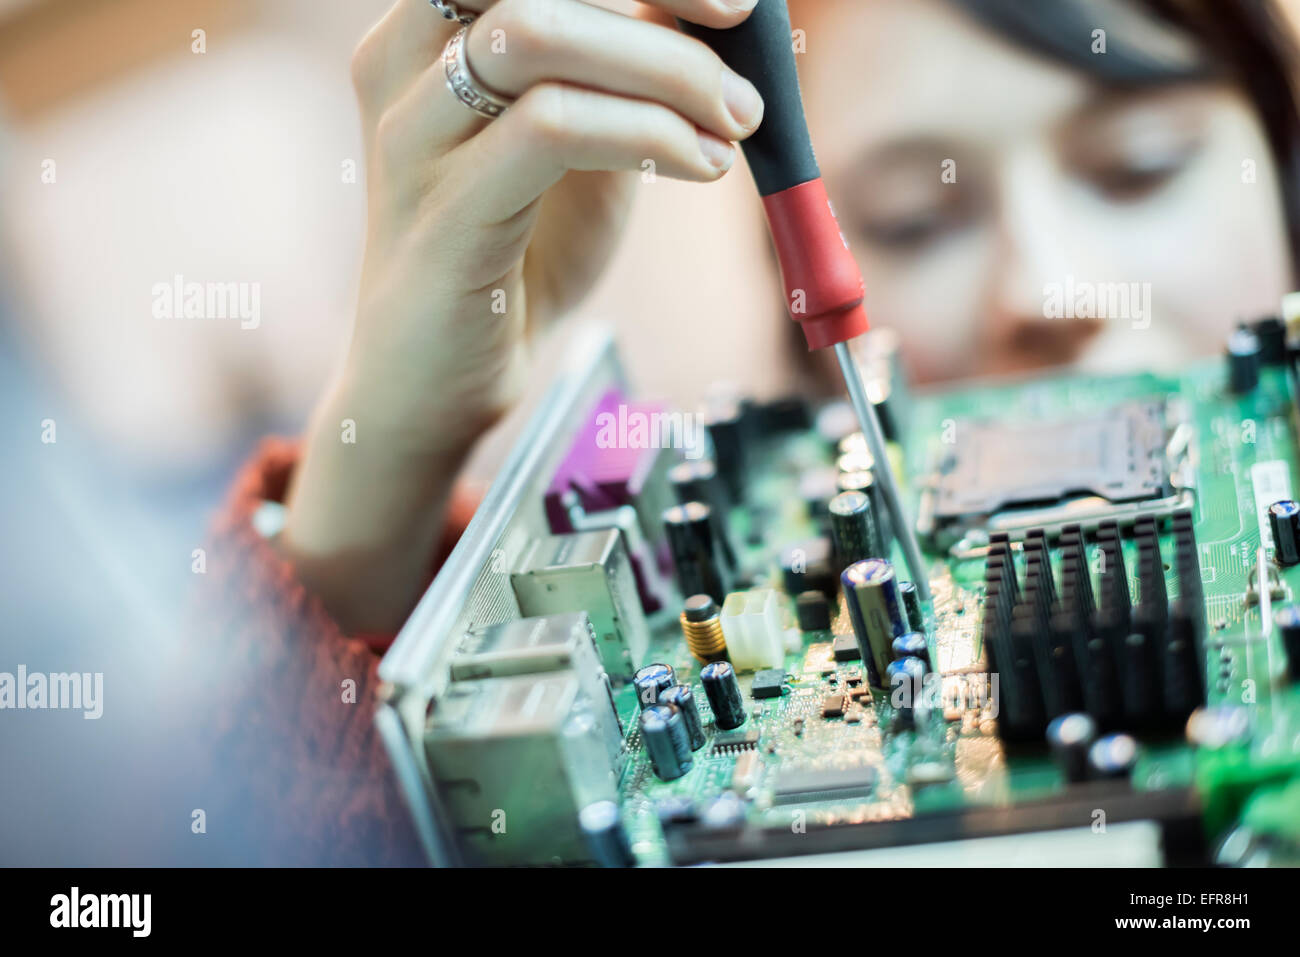 A woman using an electronic screwdriver on a computer circuitboard. - Stock Image